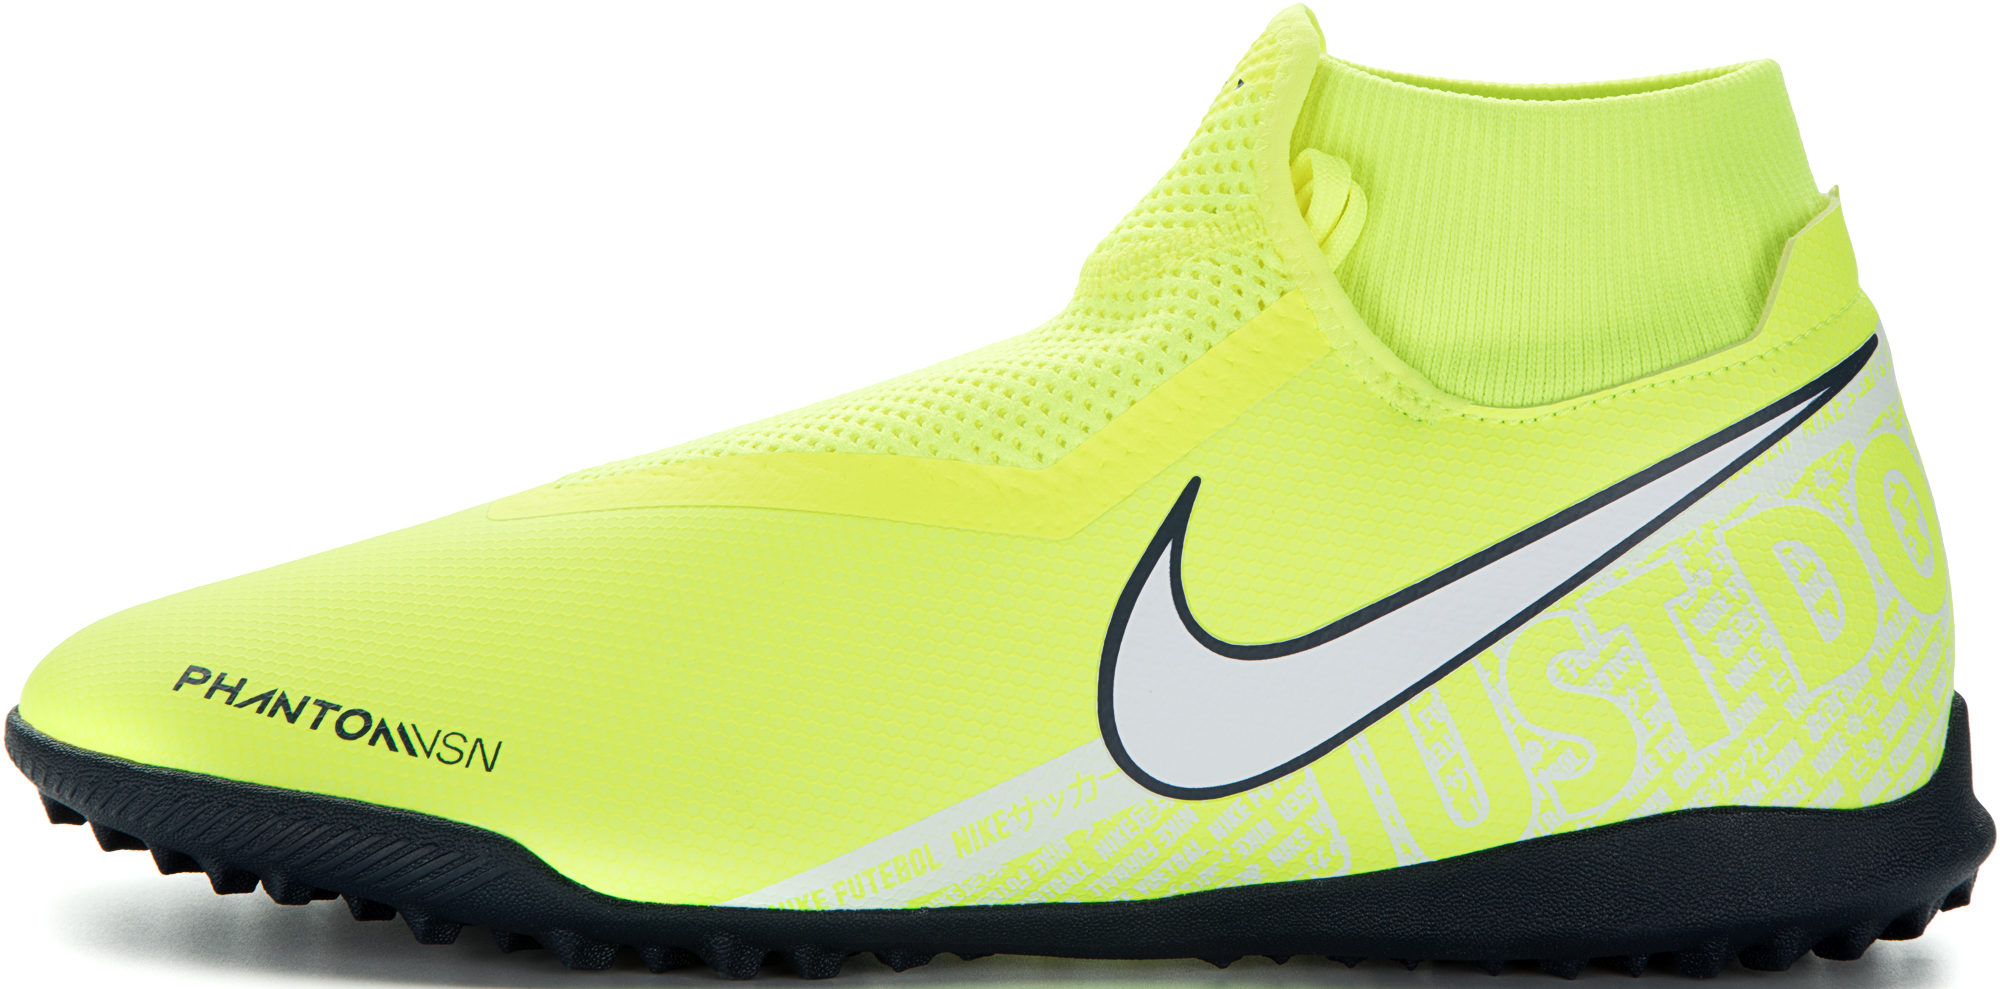 Nike Бутсы мужские Nike Phantom Vision Academy Dynamic Fit, размер 45